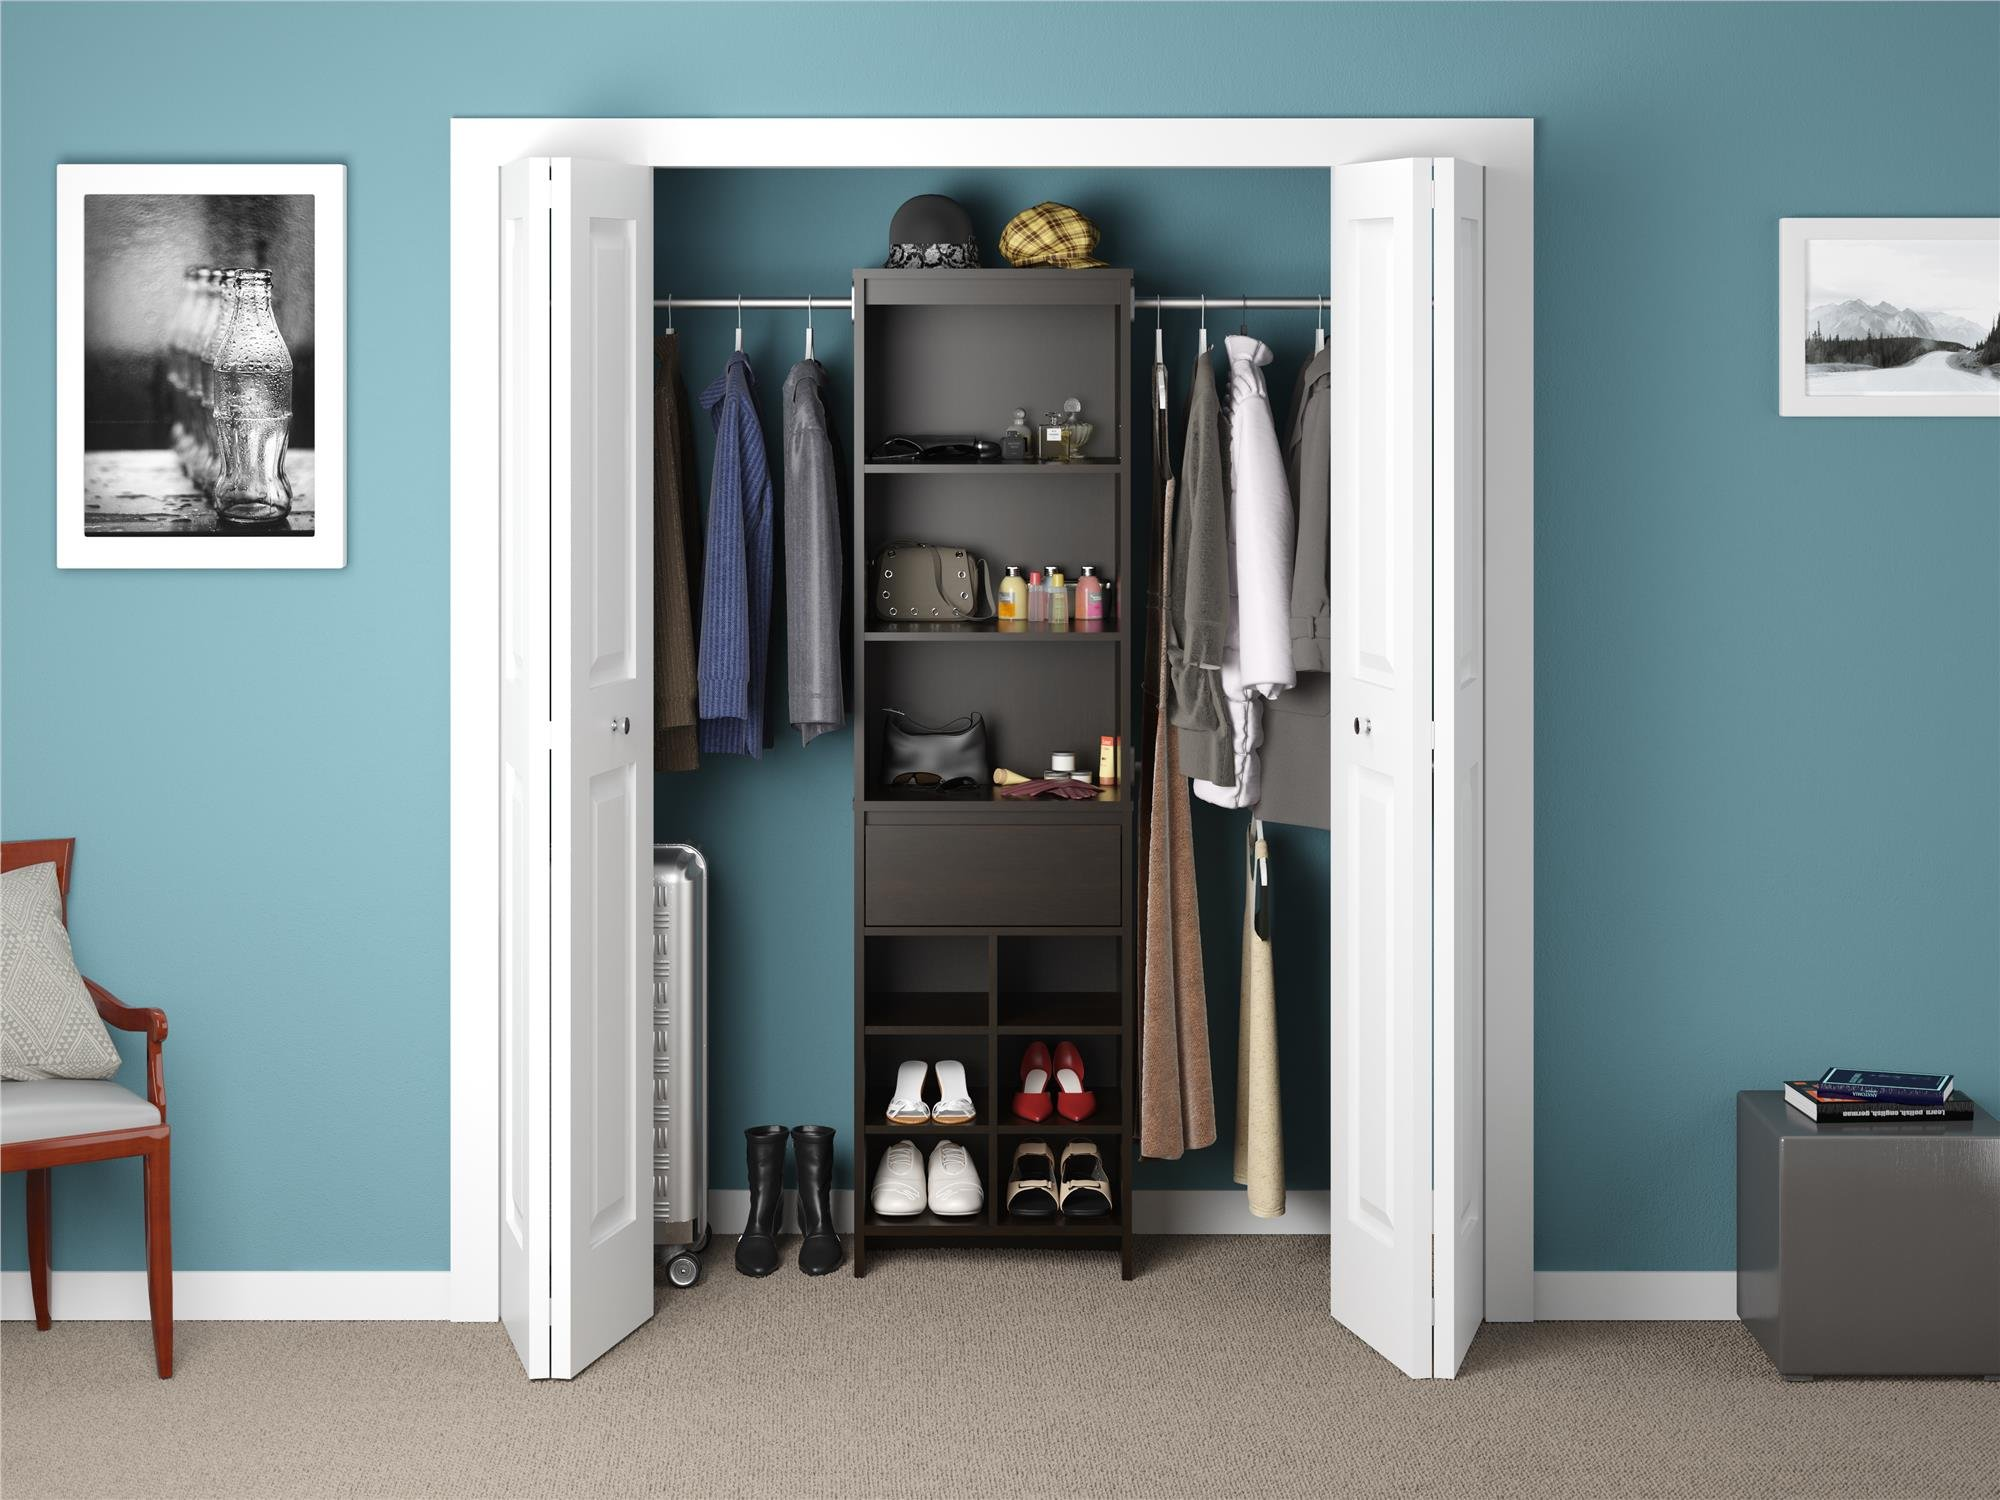 Ameriwood Home Adult Closet System, Espresso by Ameriwood Home (Image #2)